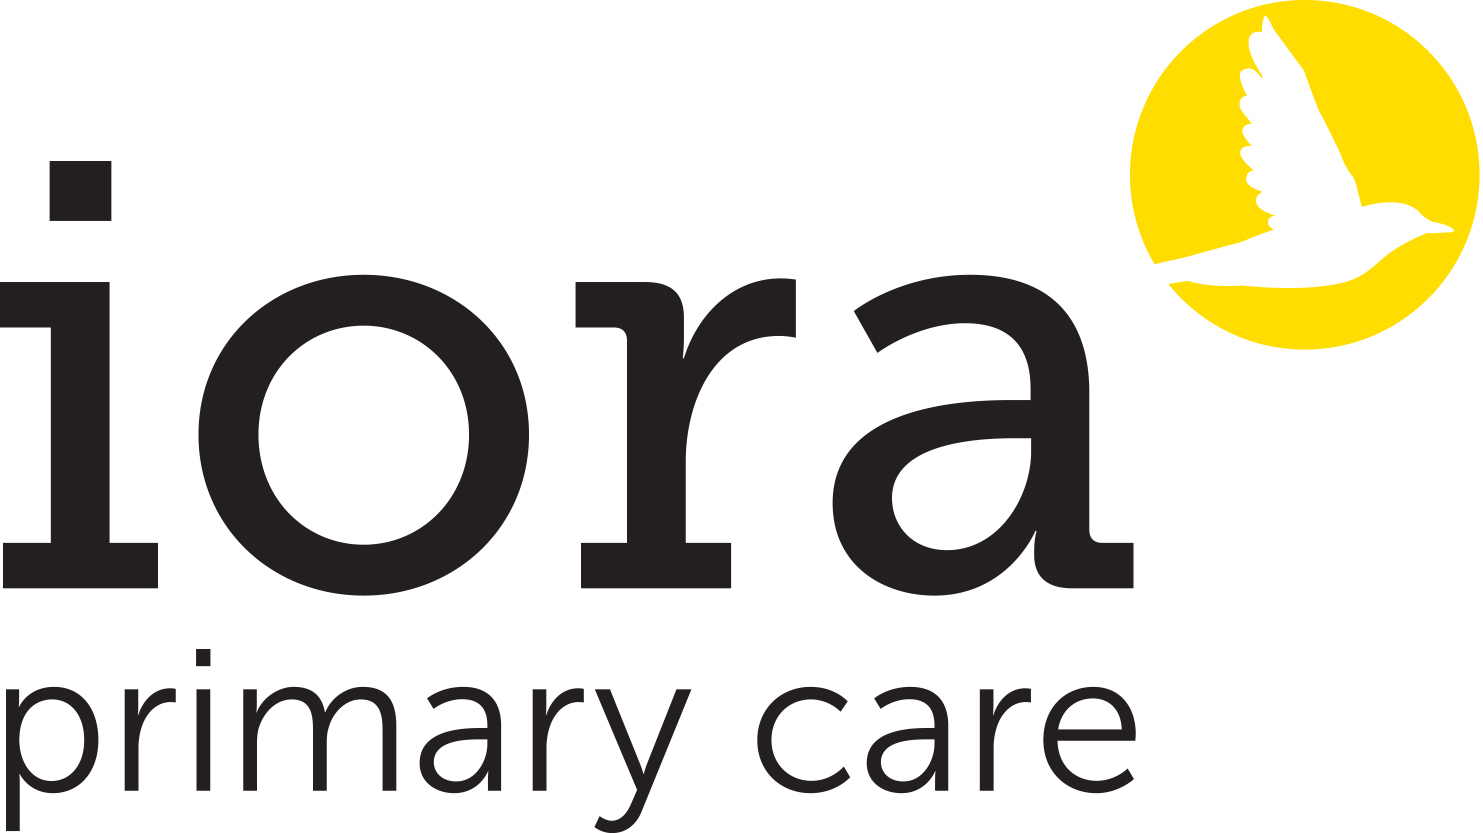 C. Iora Primary Care (Platinum)